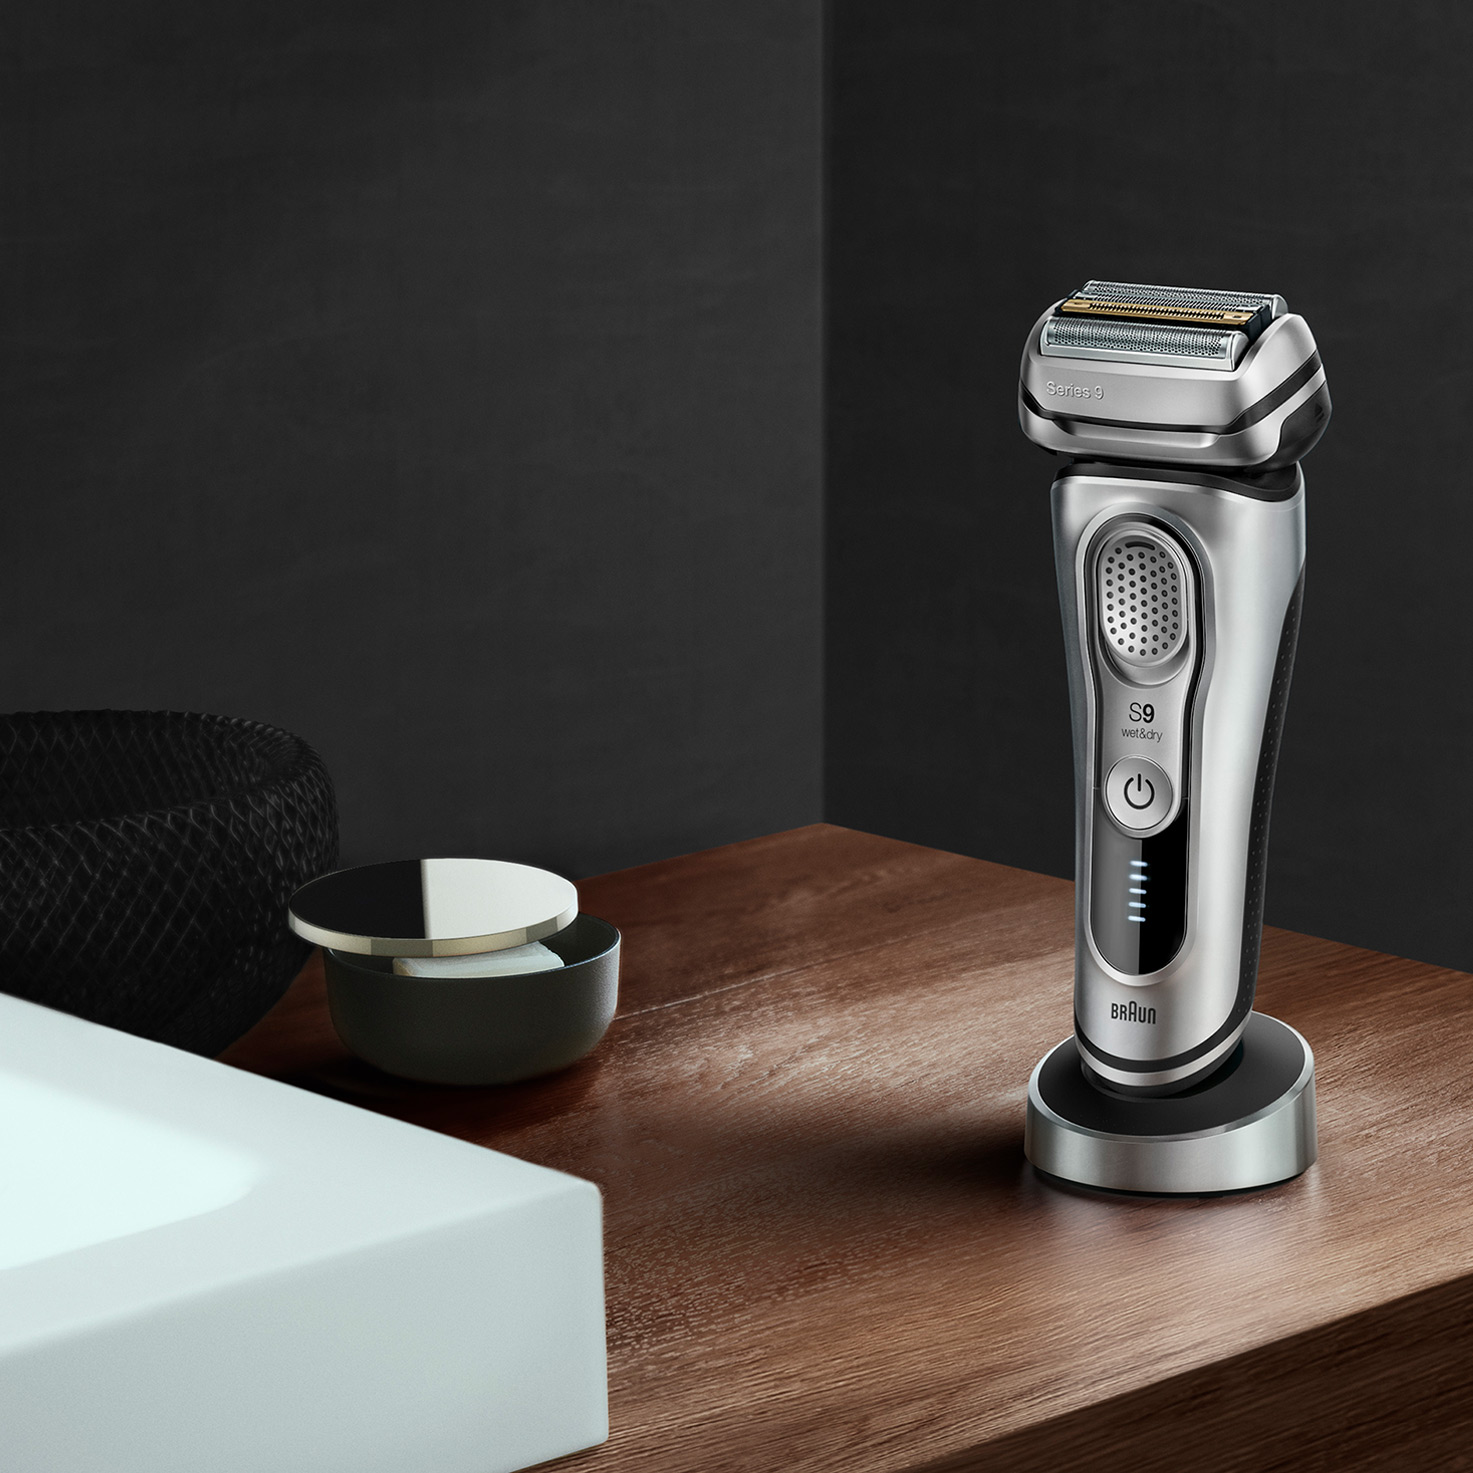 Series 9 9330s - shaver in charging stand